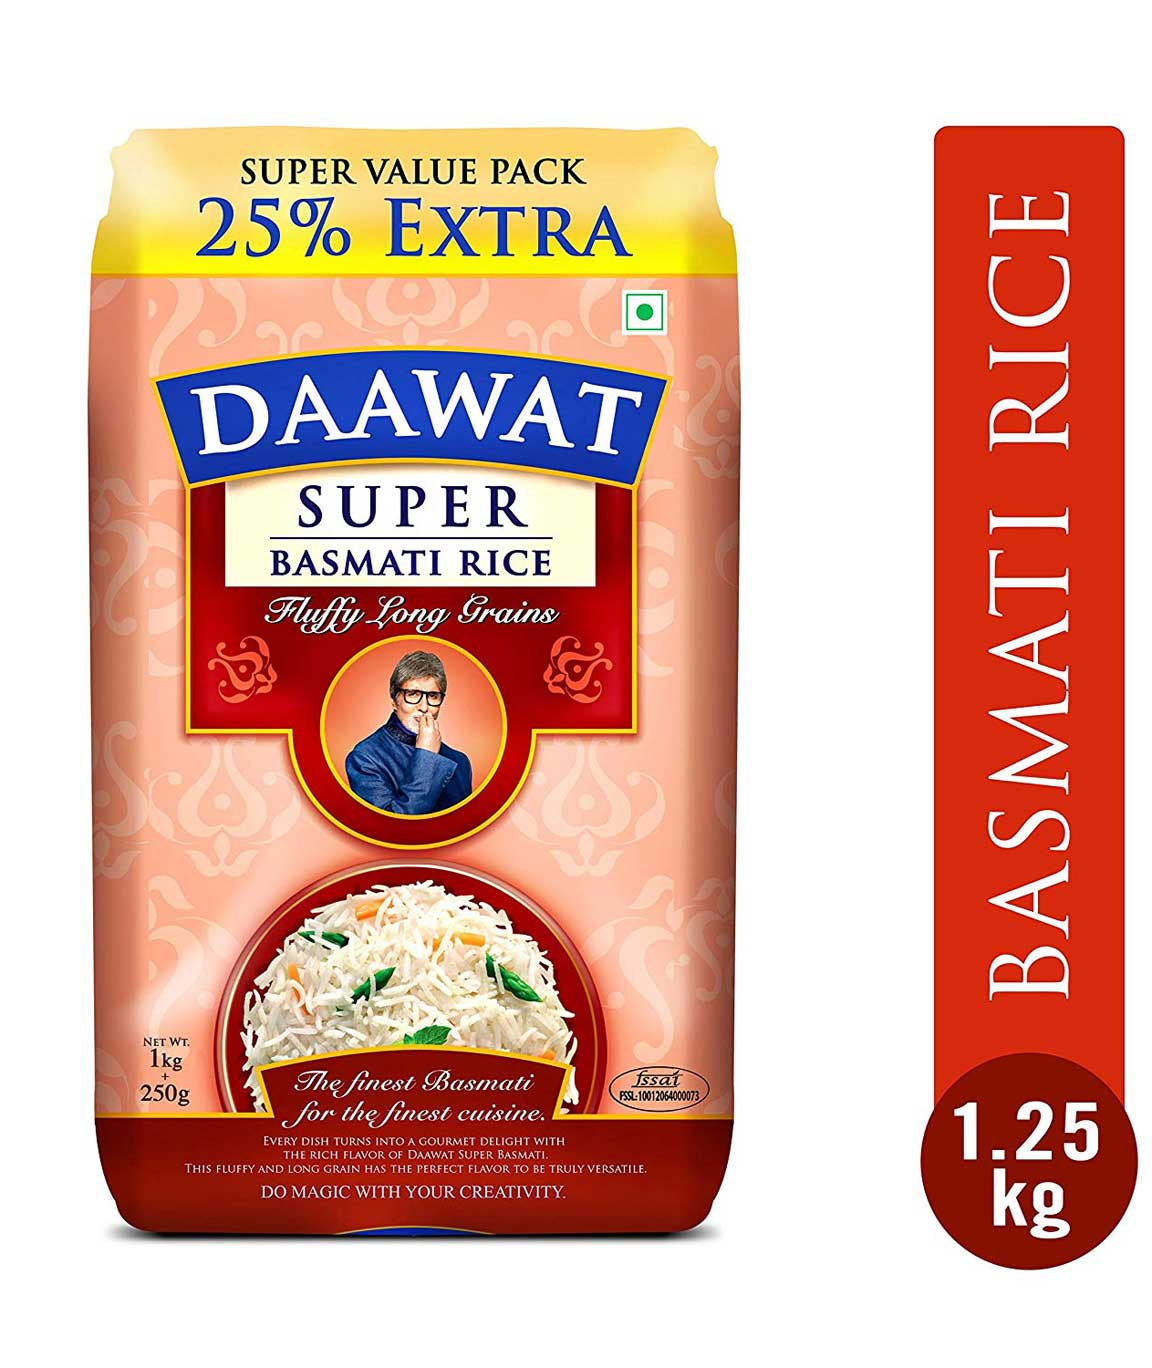 Daawat Super Basmati 1kg with 25% Extra